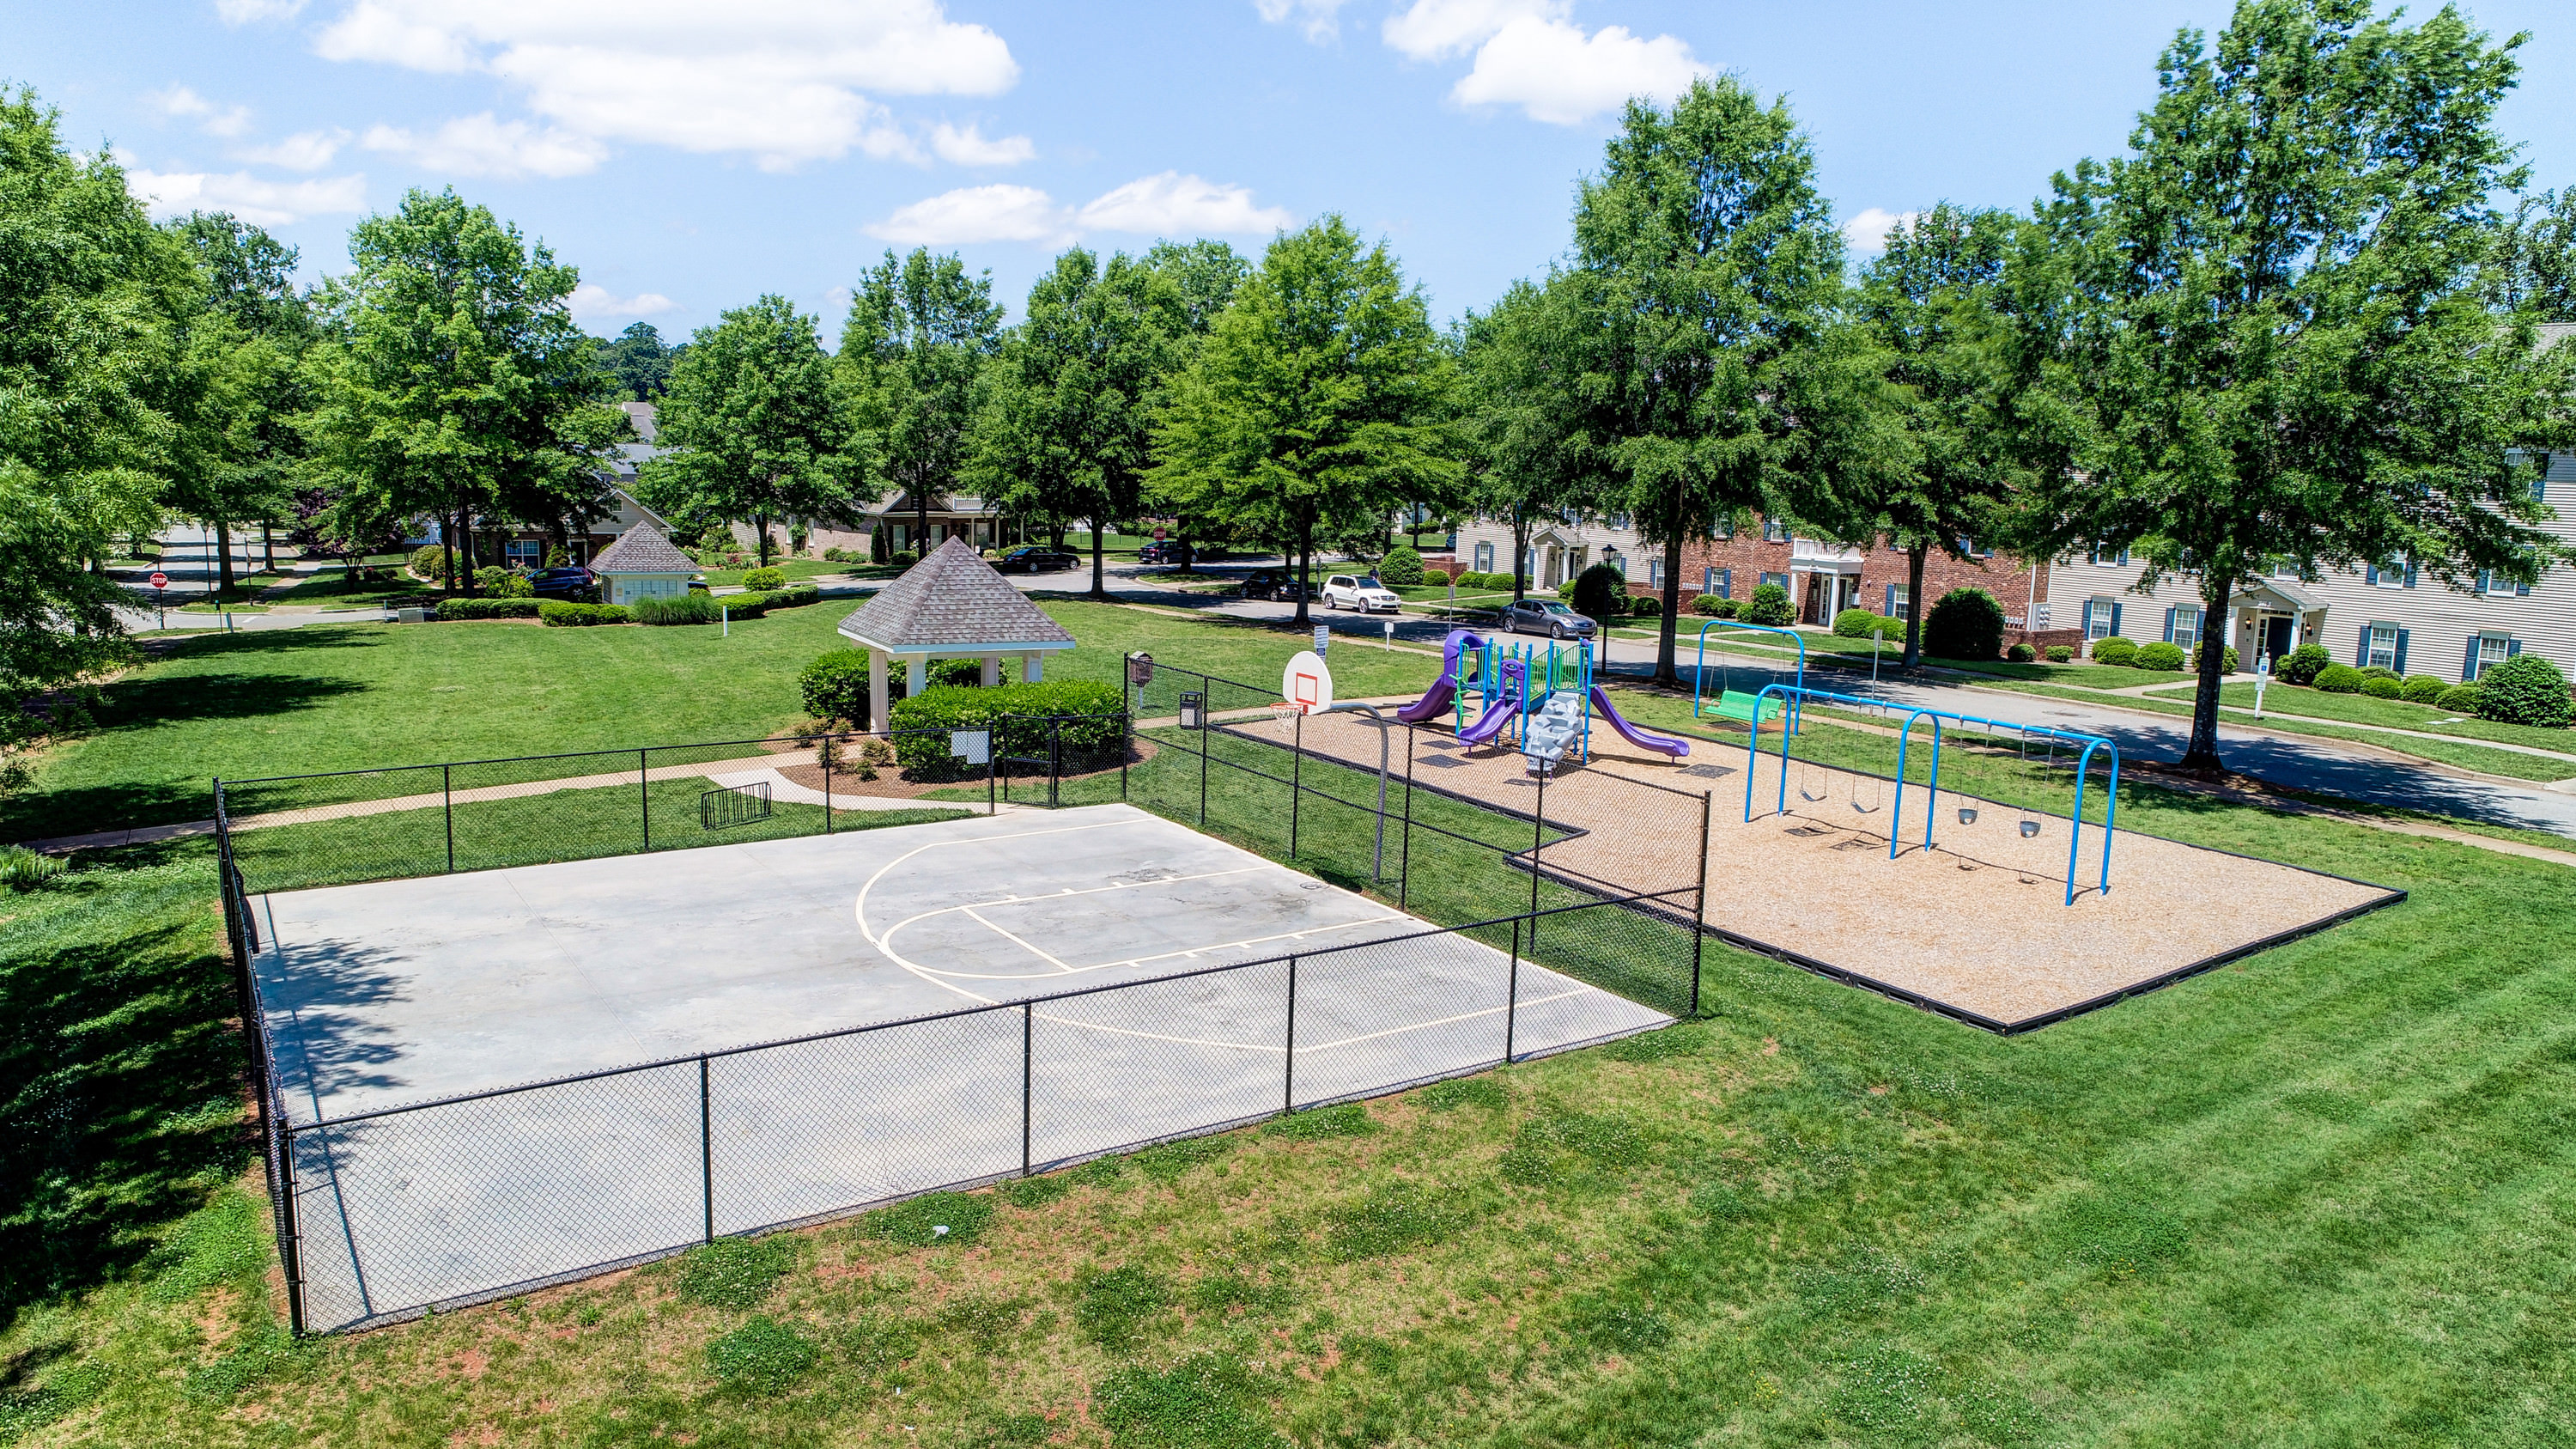 Basketball court and playground